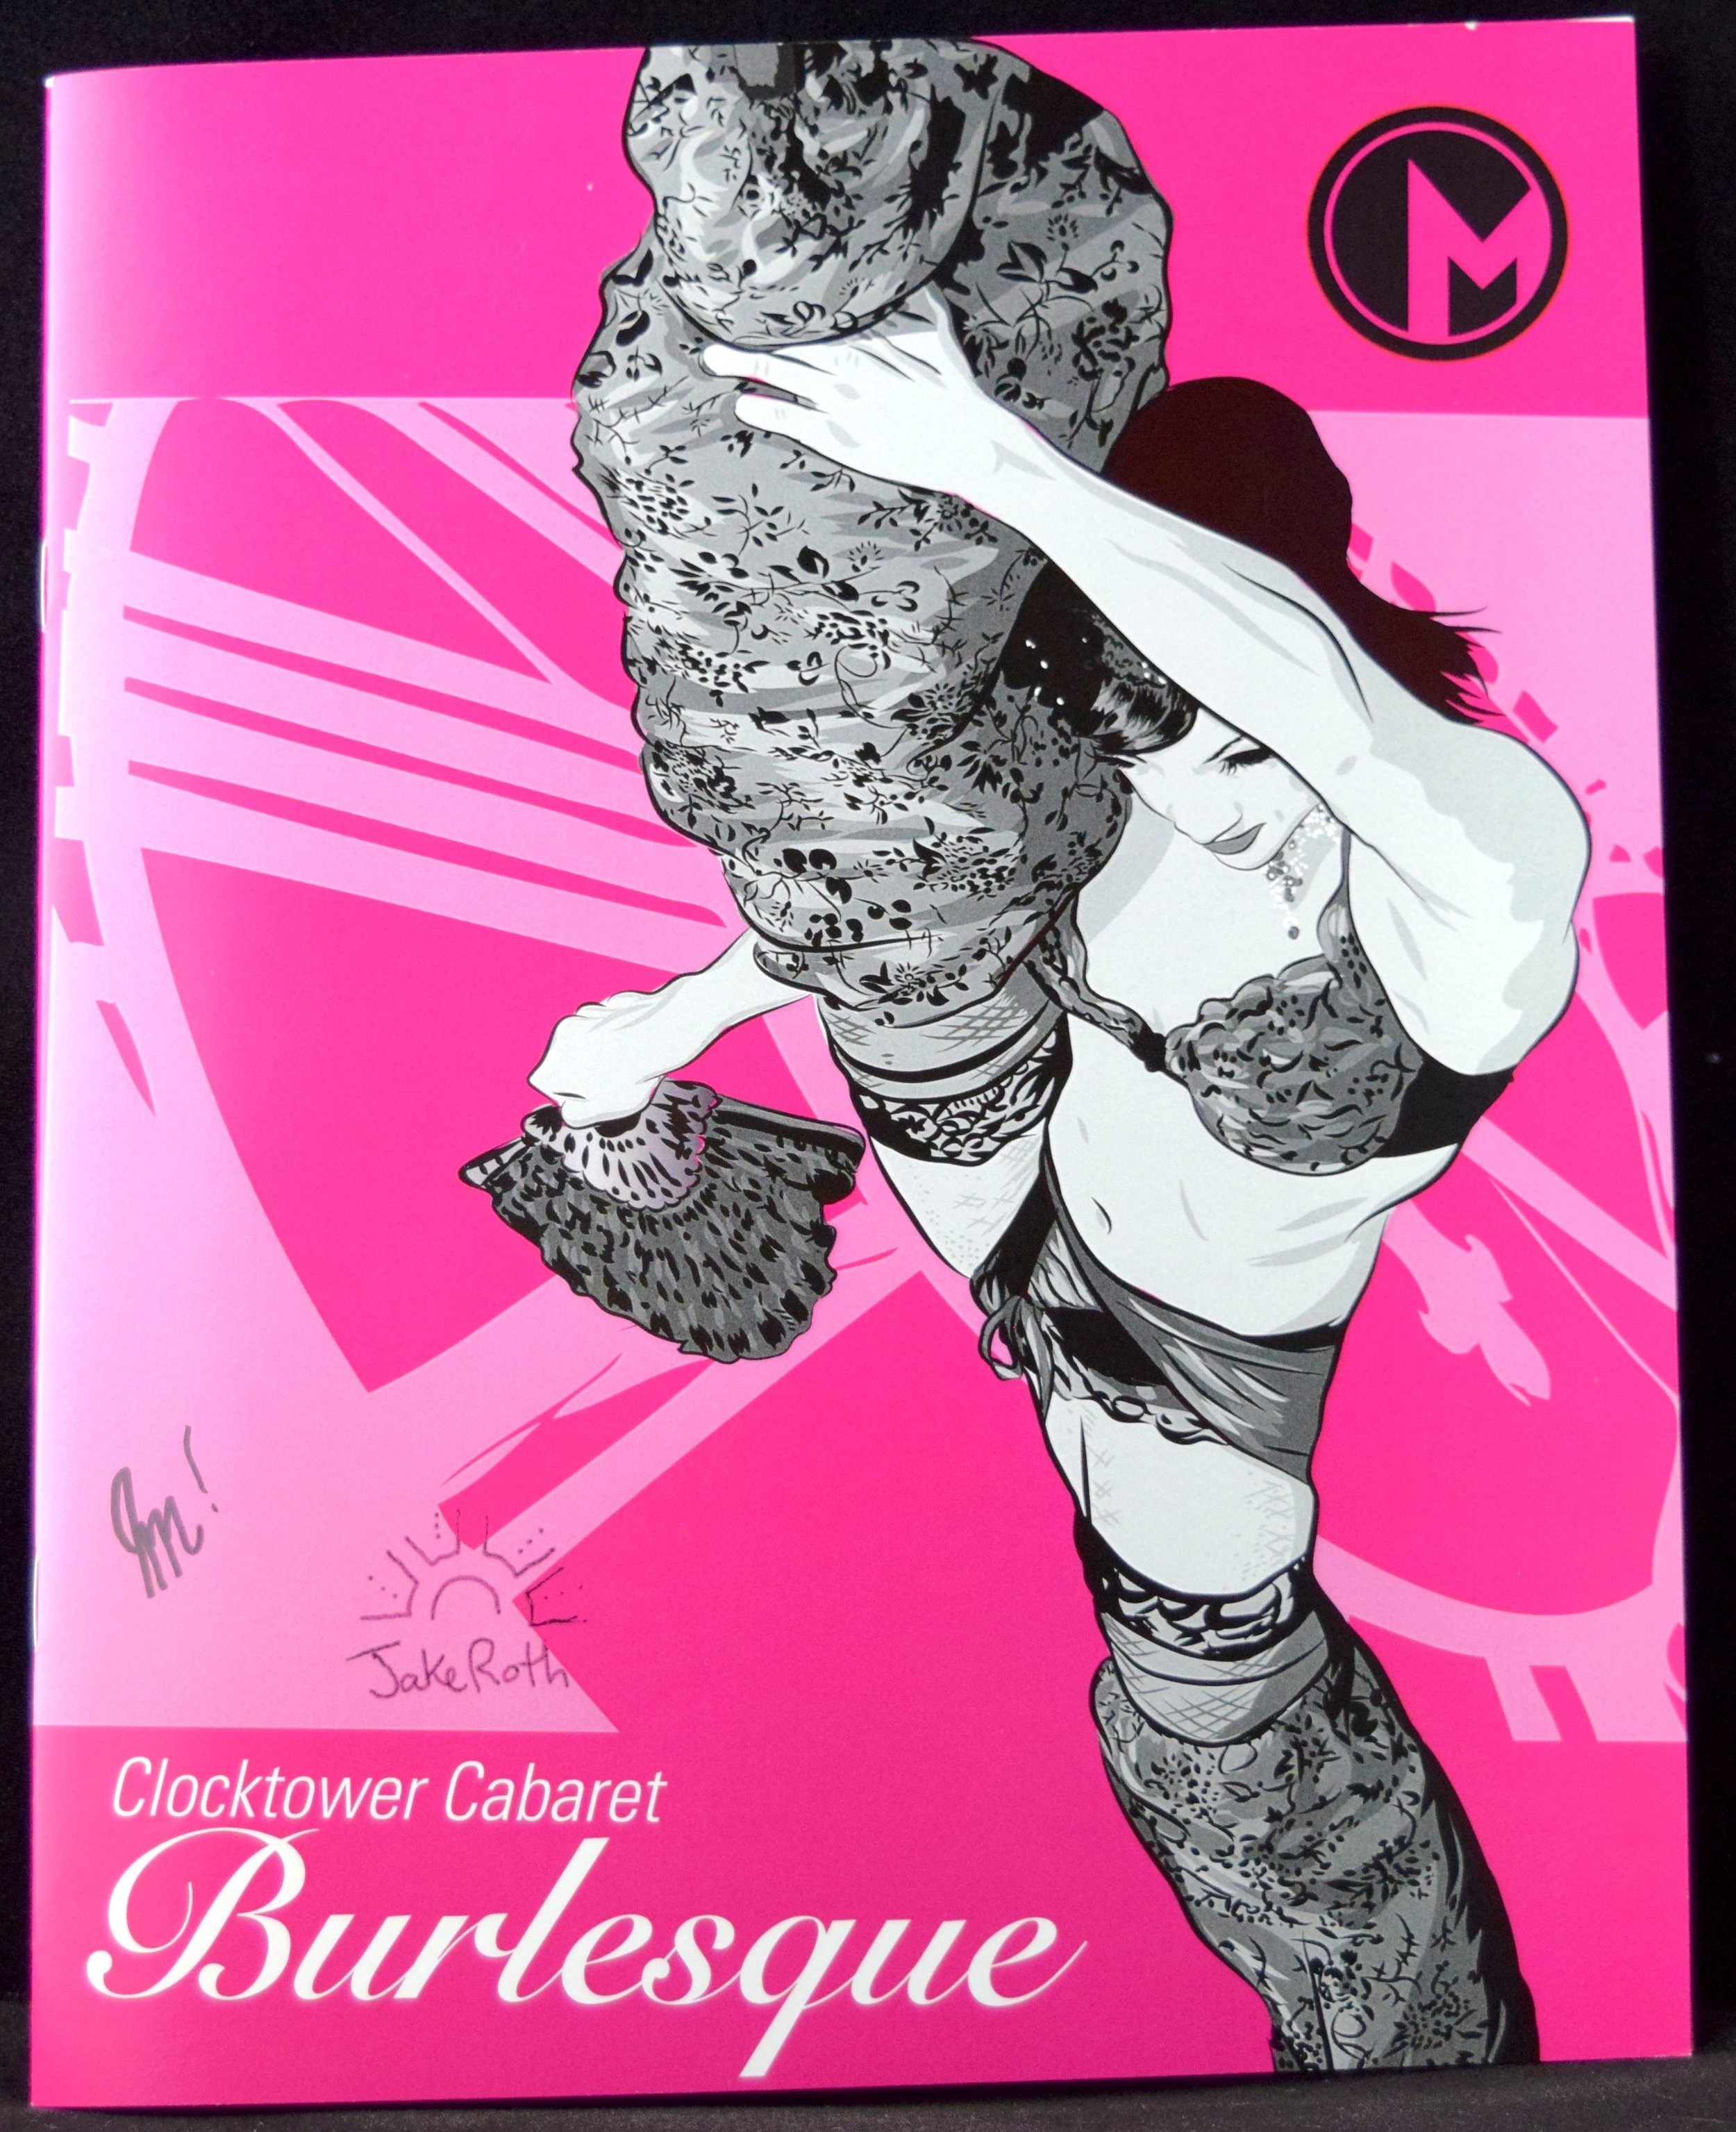 The   Clocktower Cabaret Burlesque   project, with a cover by  Gerhard Kaaihue .